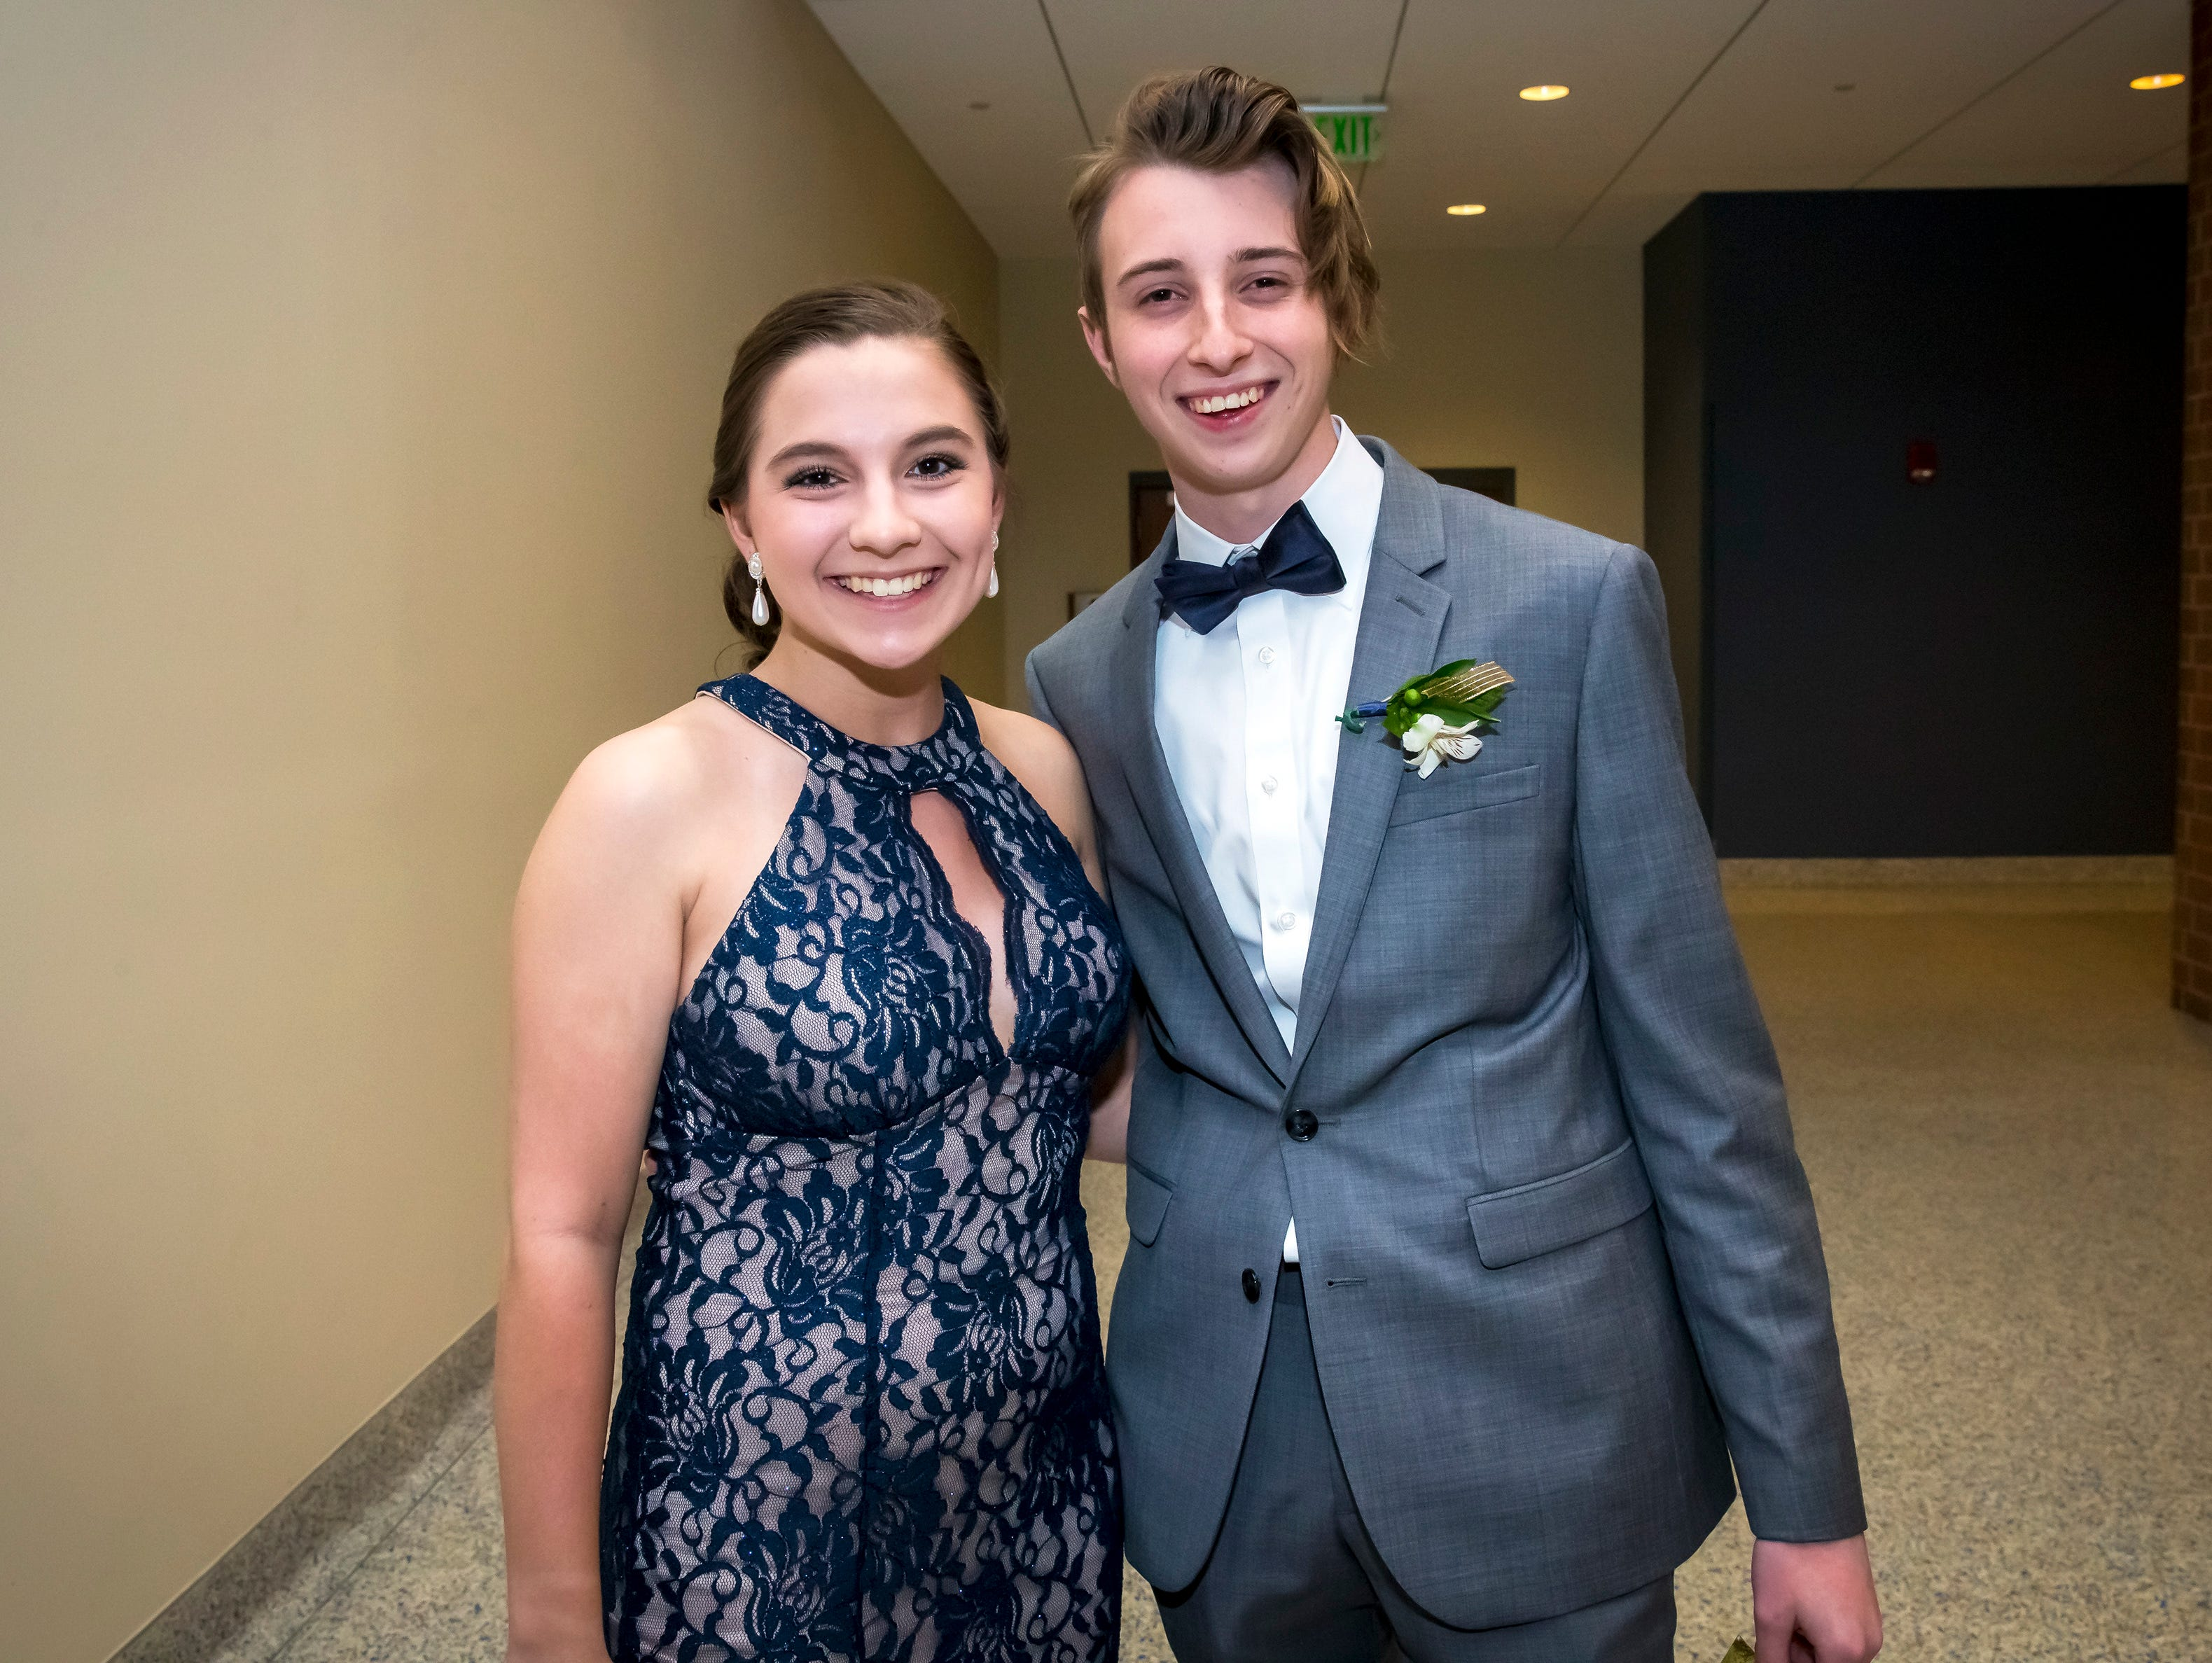 Sage Buhler and Spencer Stoner arrive at the Stewarts Creek High School prom held at MTSU, Friday, April 5, 2019.